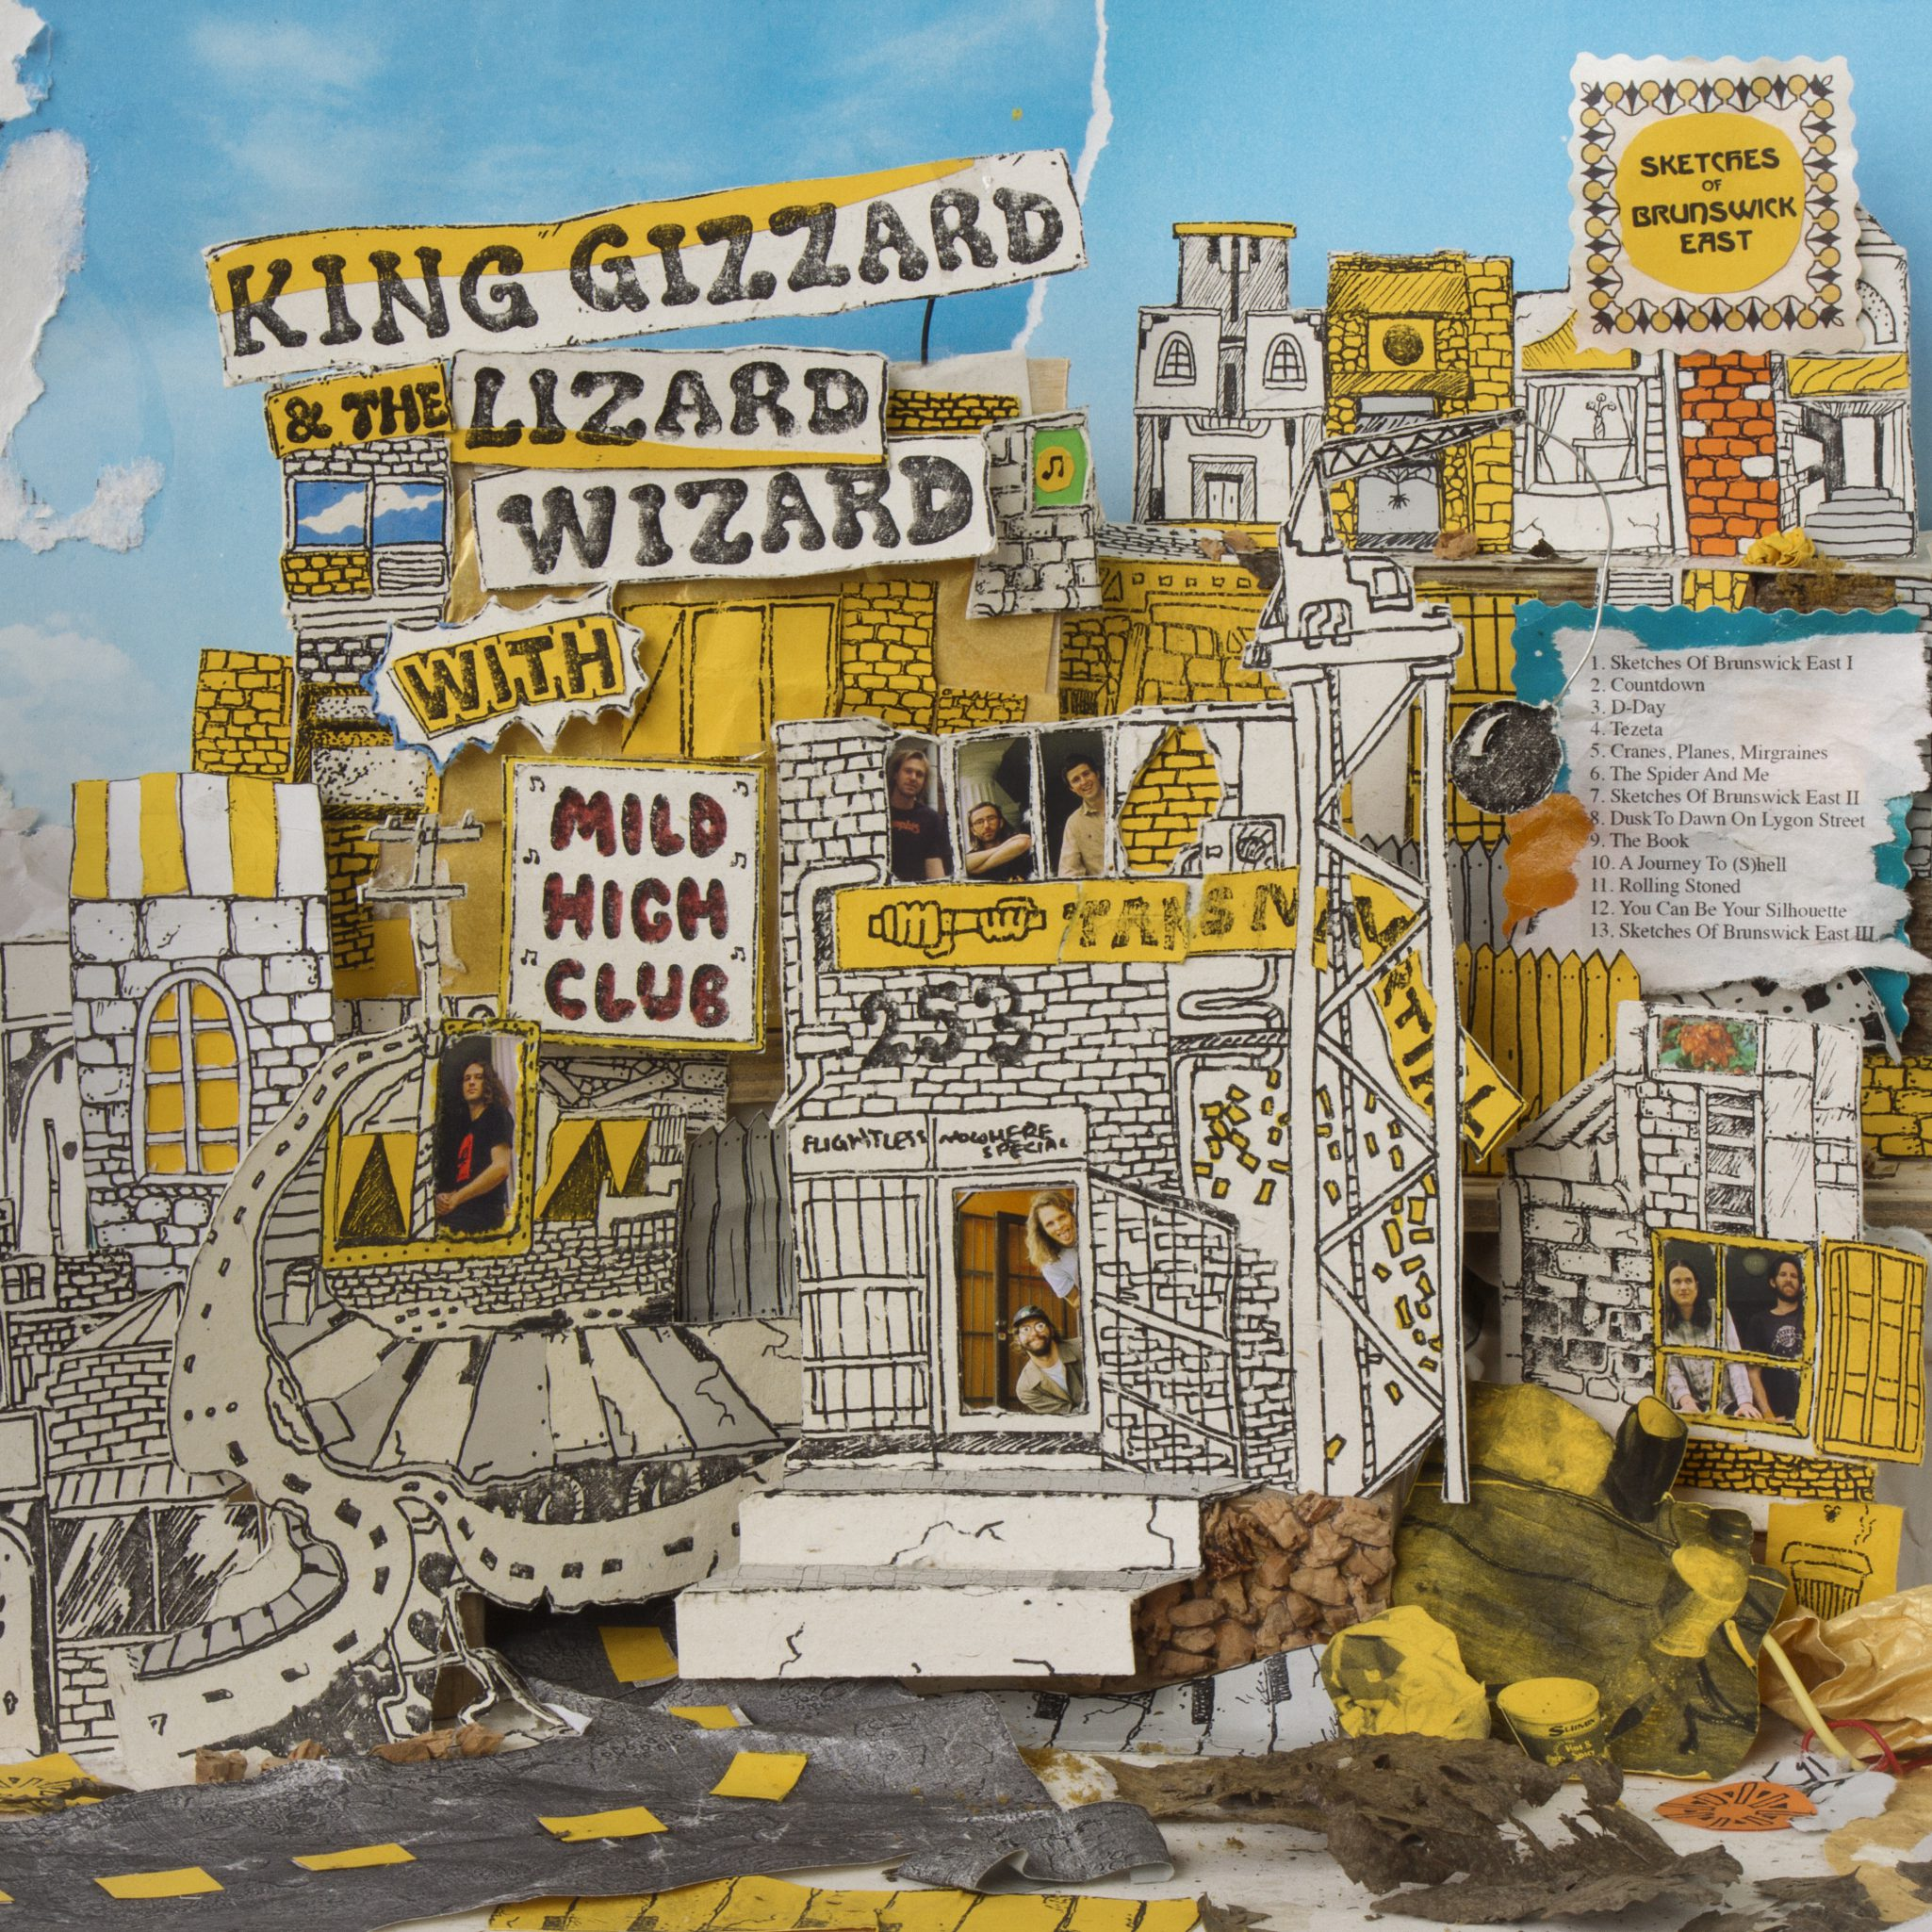 MILD HIGH CLUB WITH KING GIZZARD & THE LIZARD WIZARD – SKETCHES OF BRUNSWICK EAST